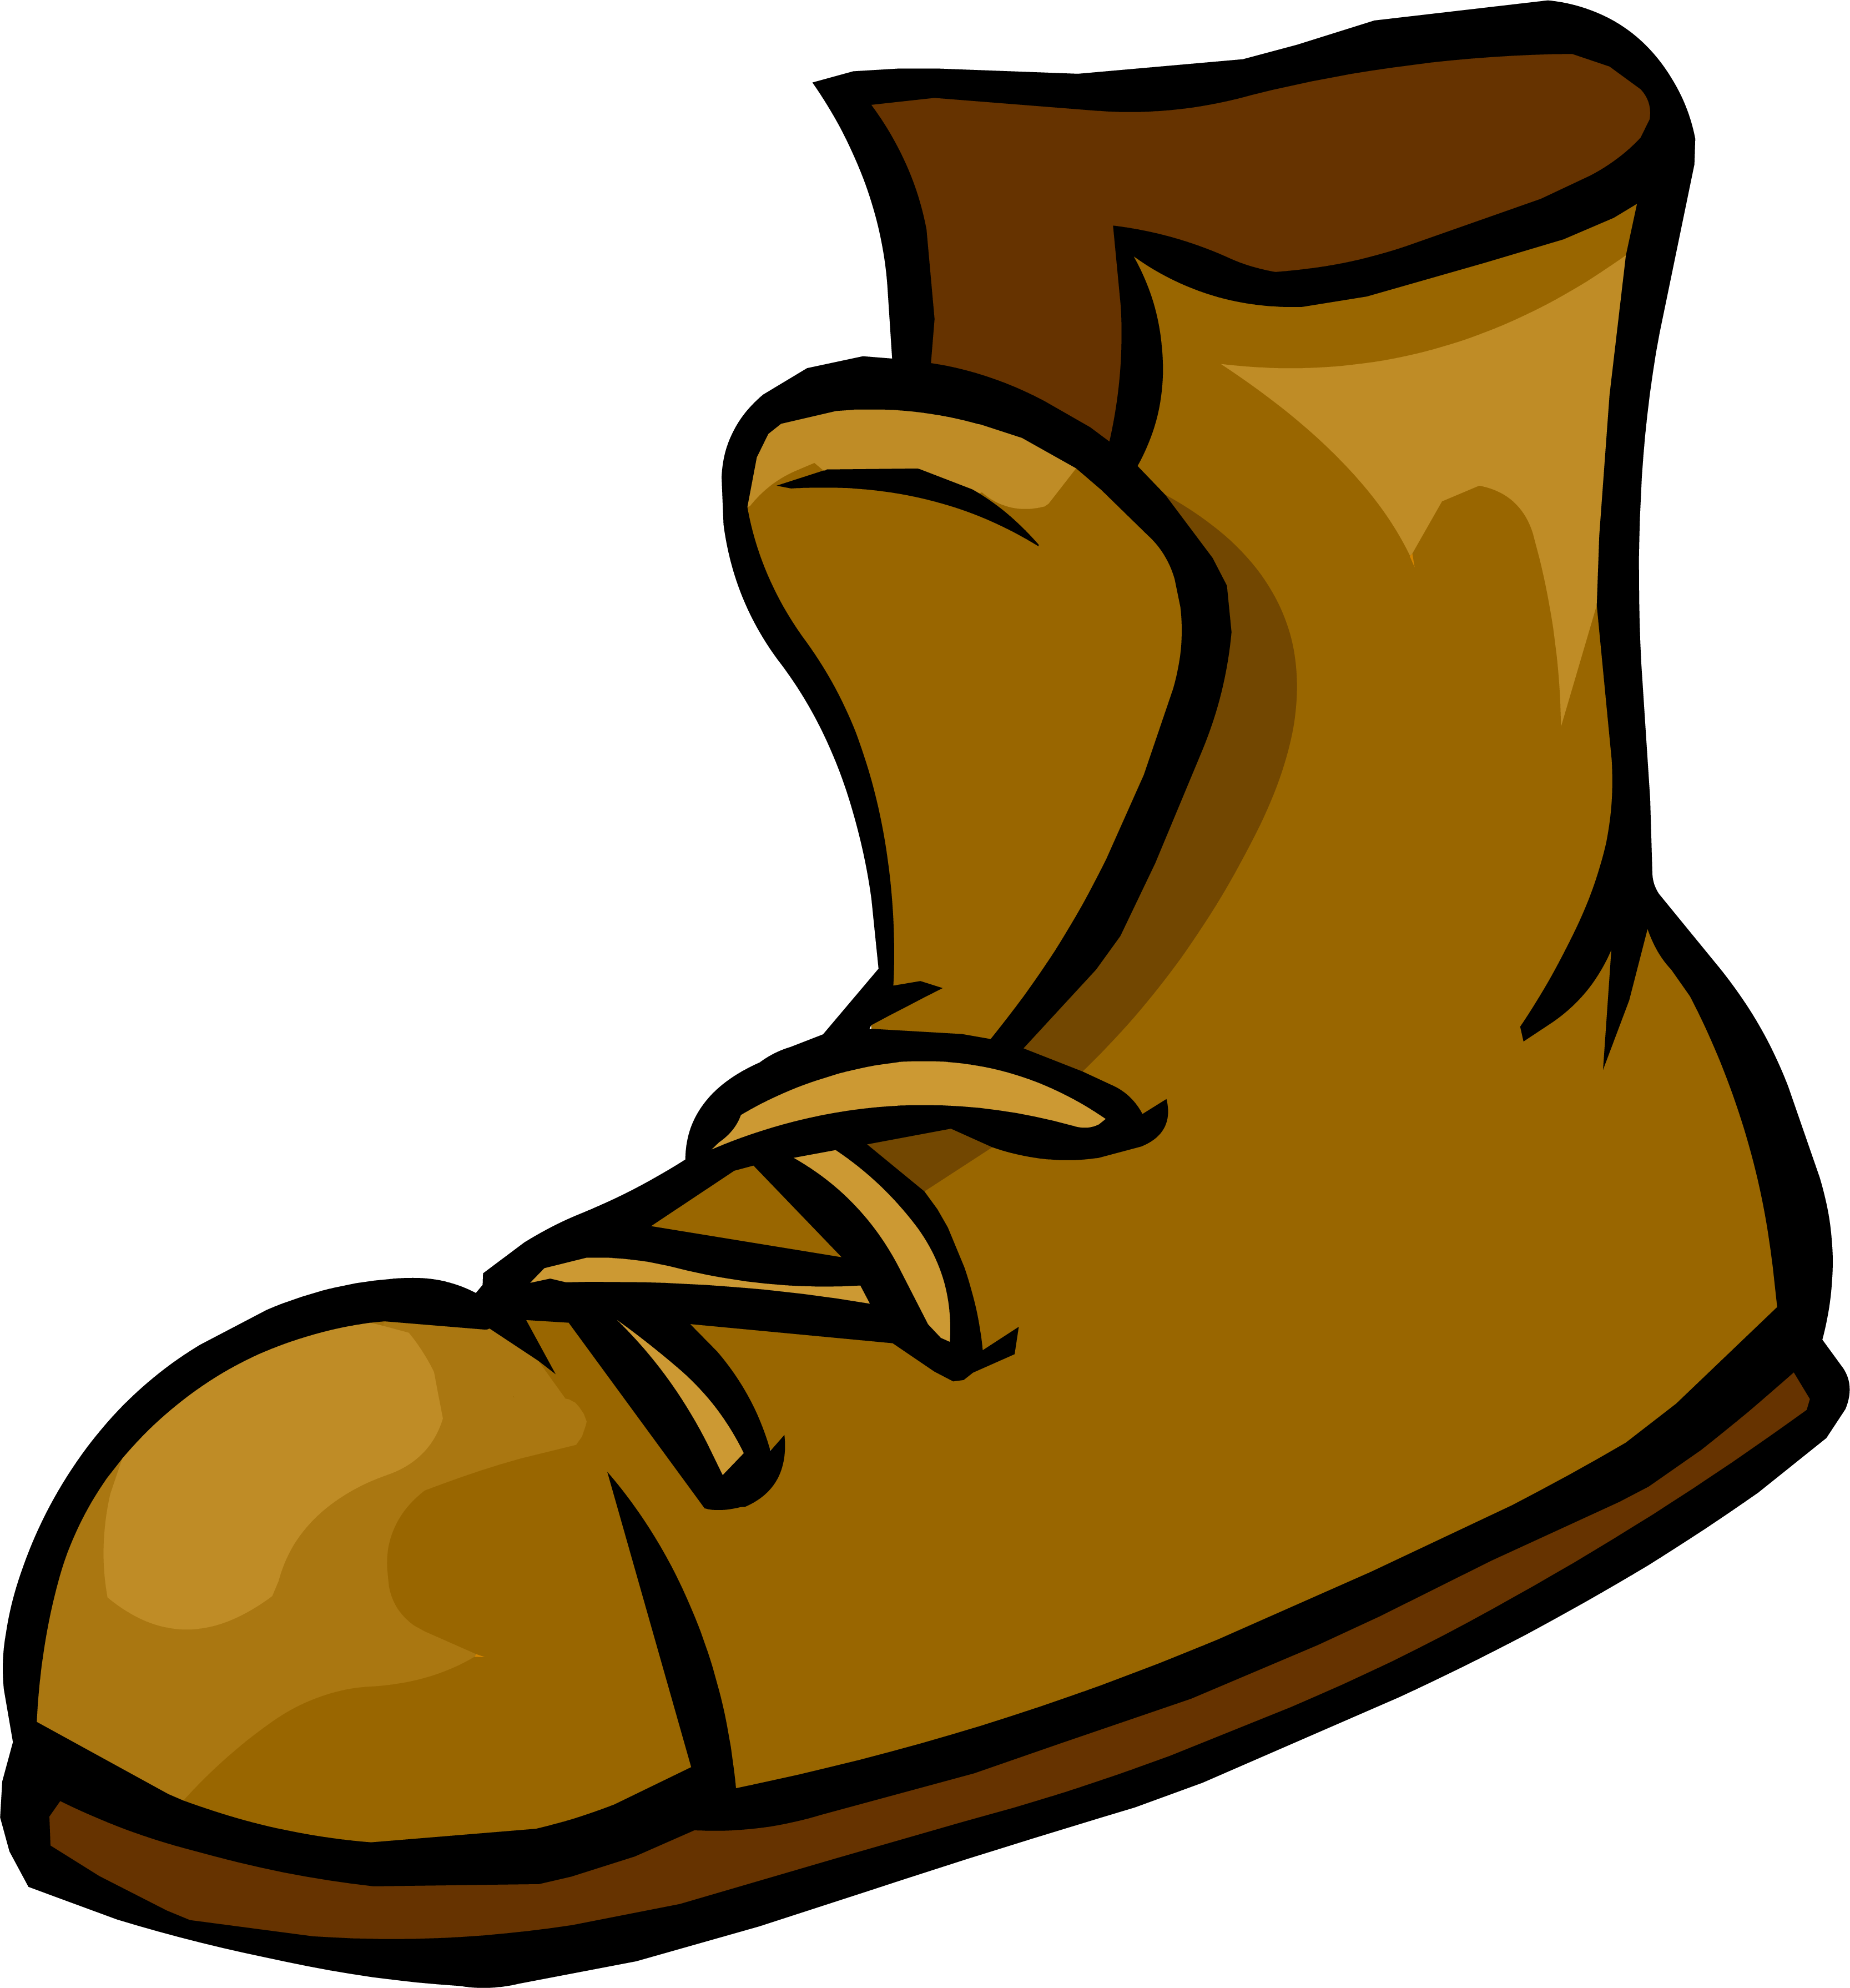 Boot Transparent Image PNG Image